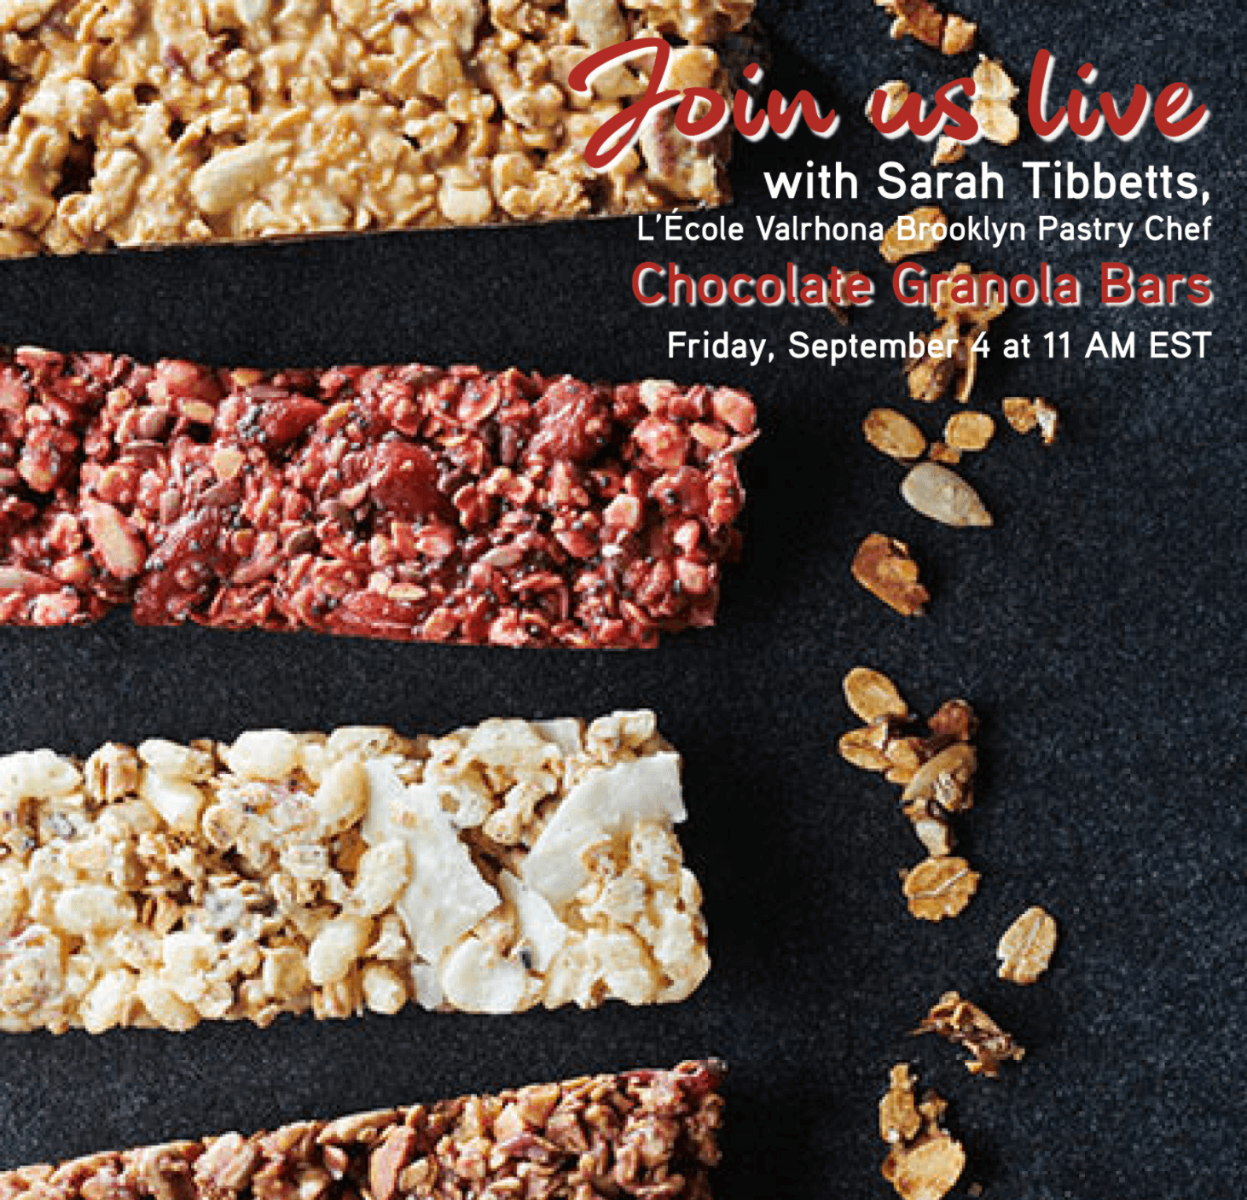 Announcing IG Live with Sarah: Granola Bars